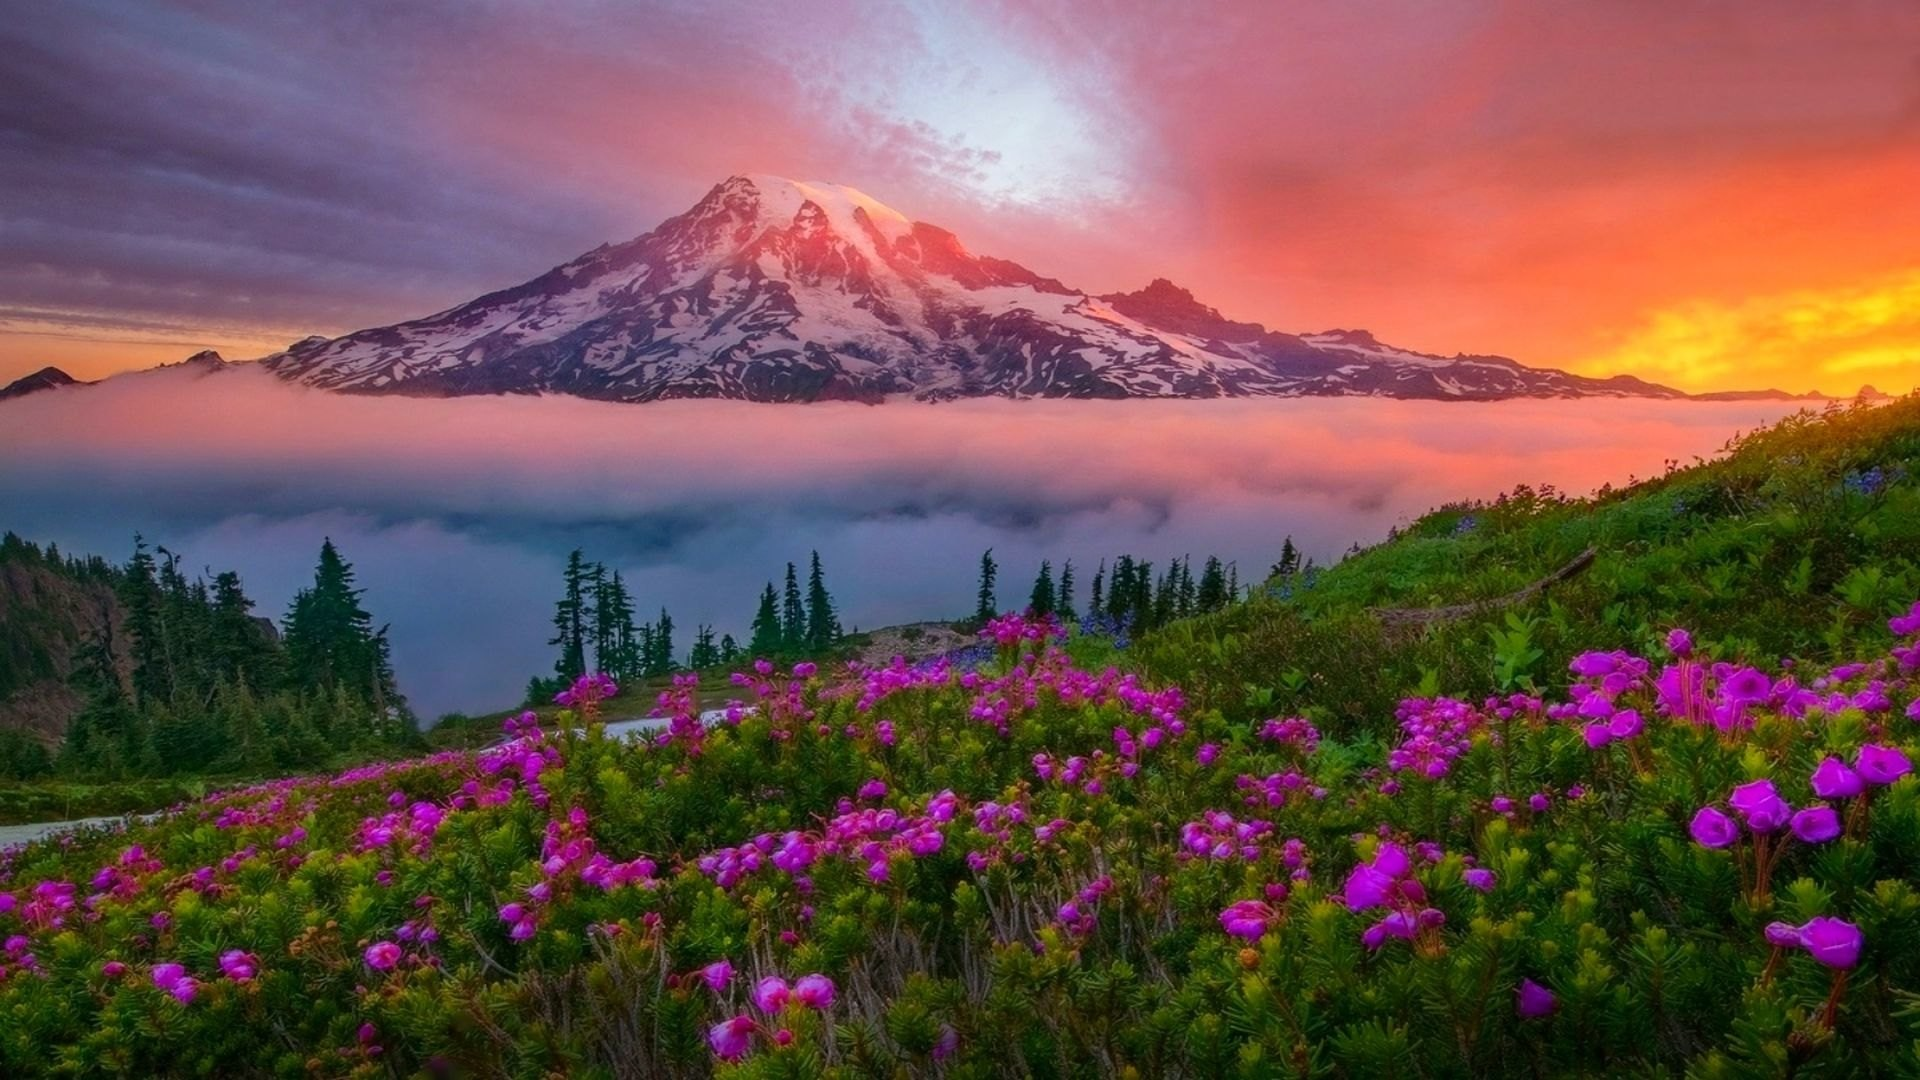 1920x1080 Mount Rainier Wallpaper HD 11 - 1920 X 1080